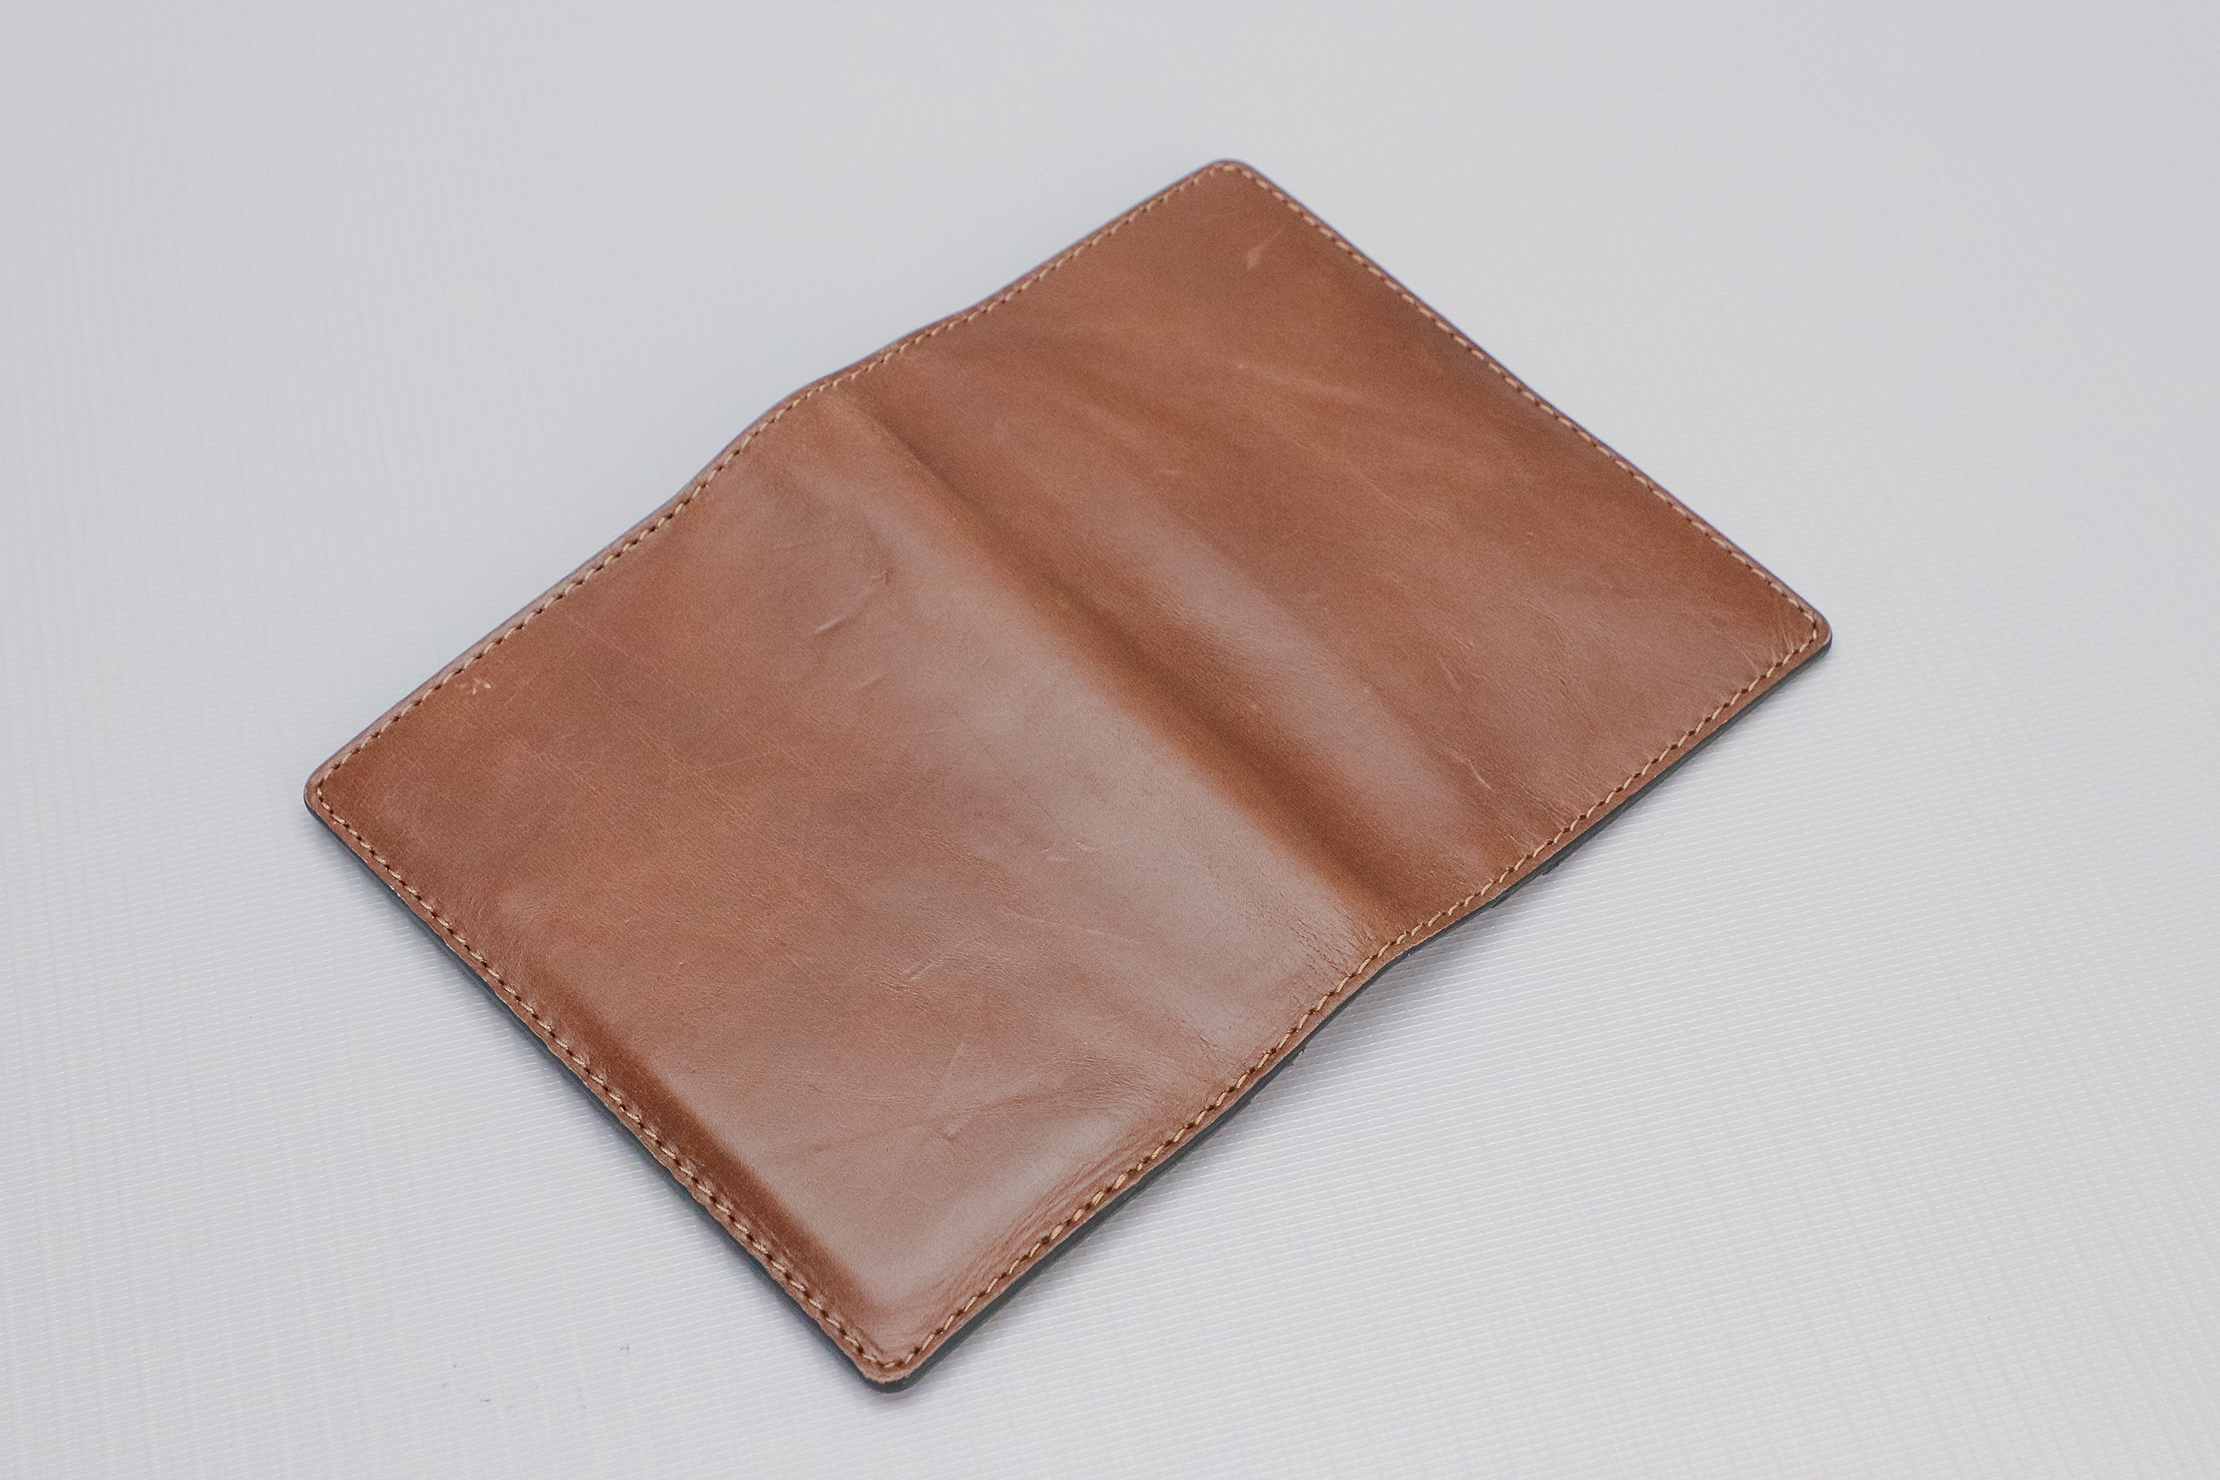 Nomad Goods Traditional Passport Wallet Flipped Upside Down